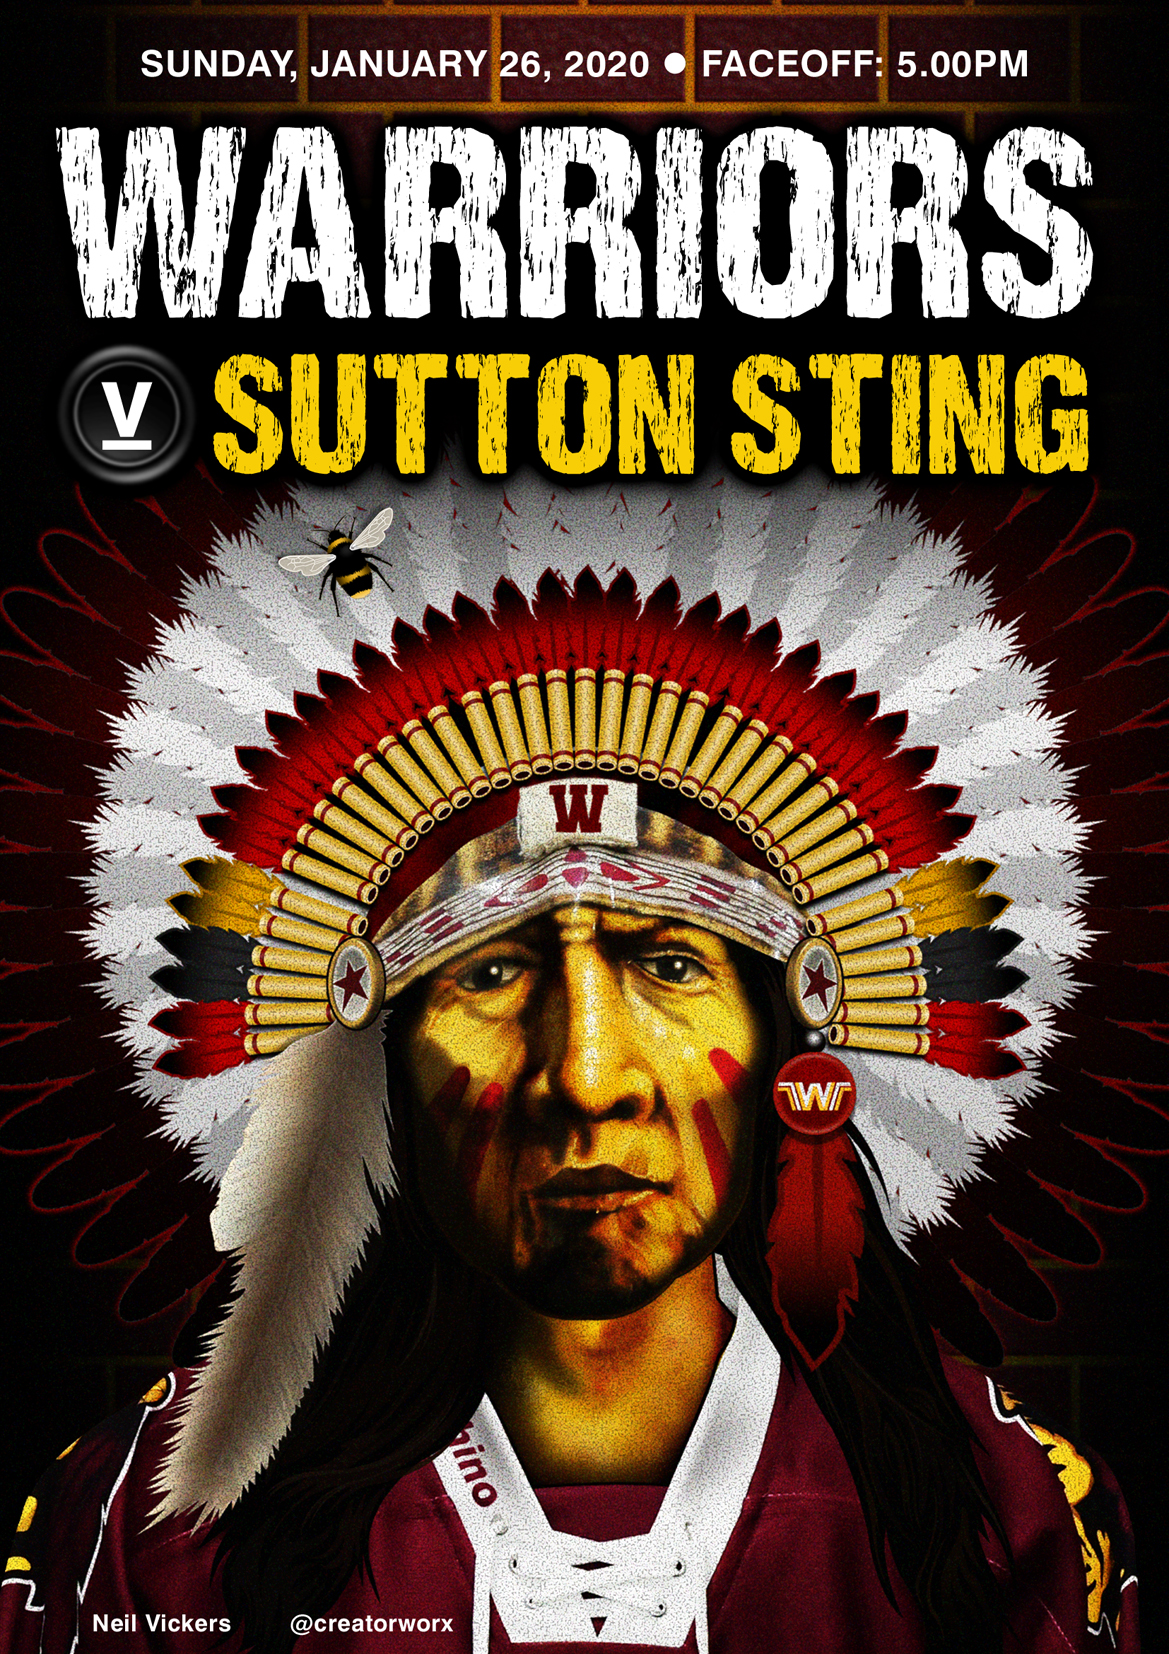 Whitley Warriors vs Sutton Sting @ Whitley Bay Ice Rink, Sunday 26 January 2020, face off 5pm